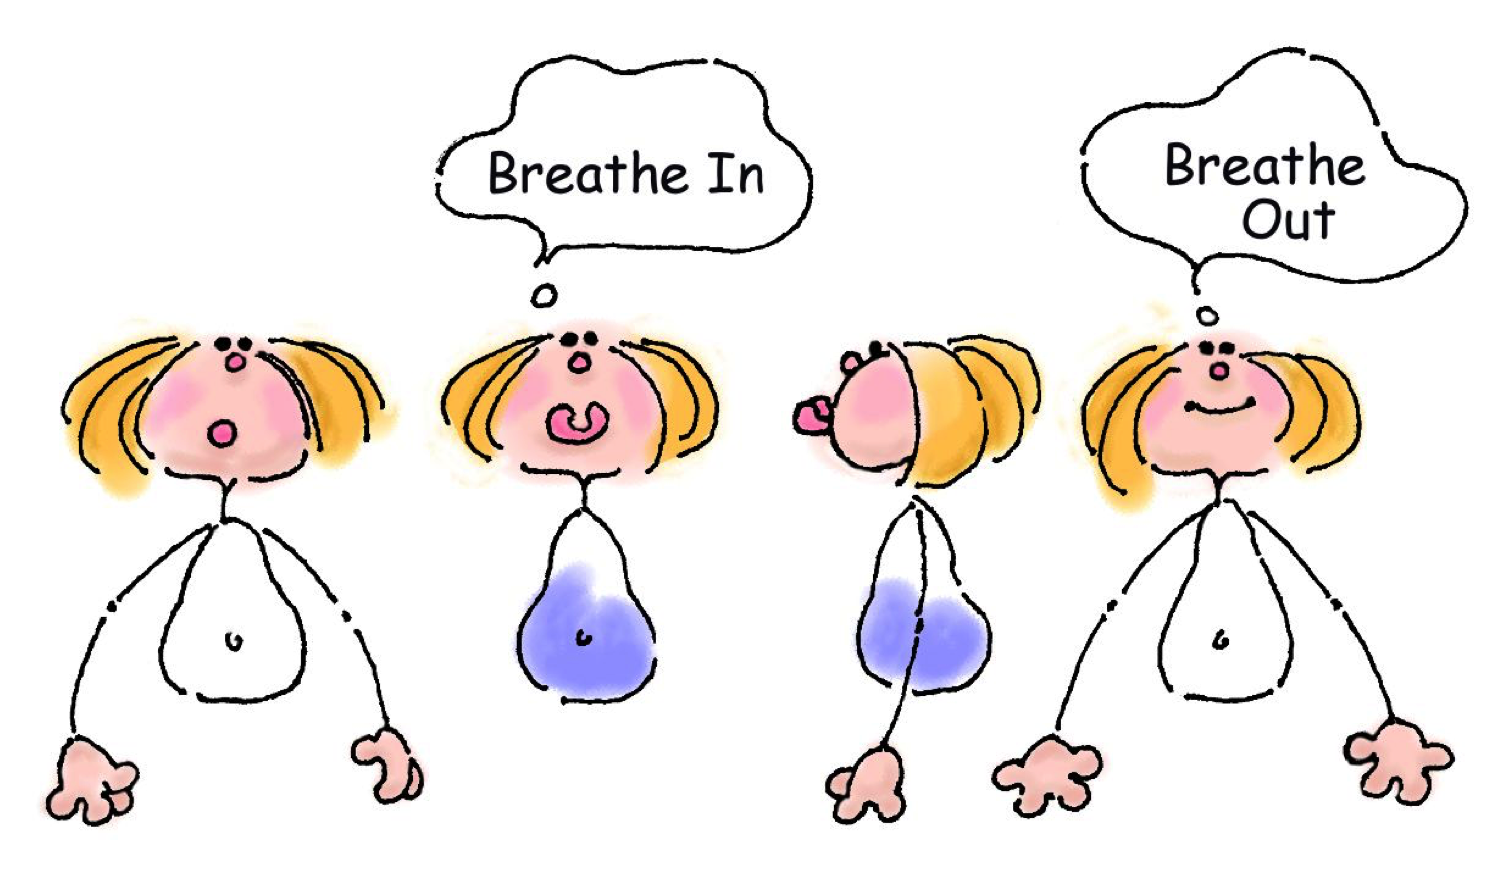 mindfulness-at-work-top-tip-5-intentionally-pause-and-breath